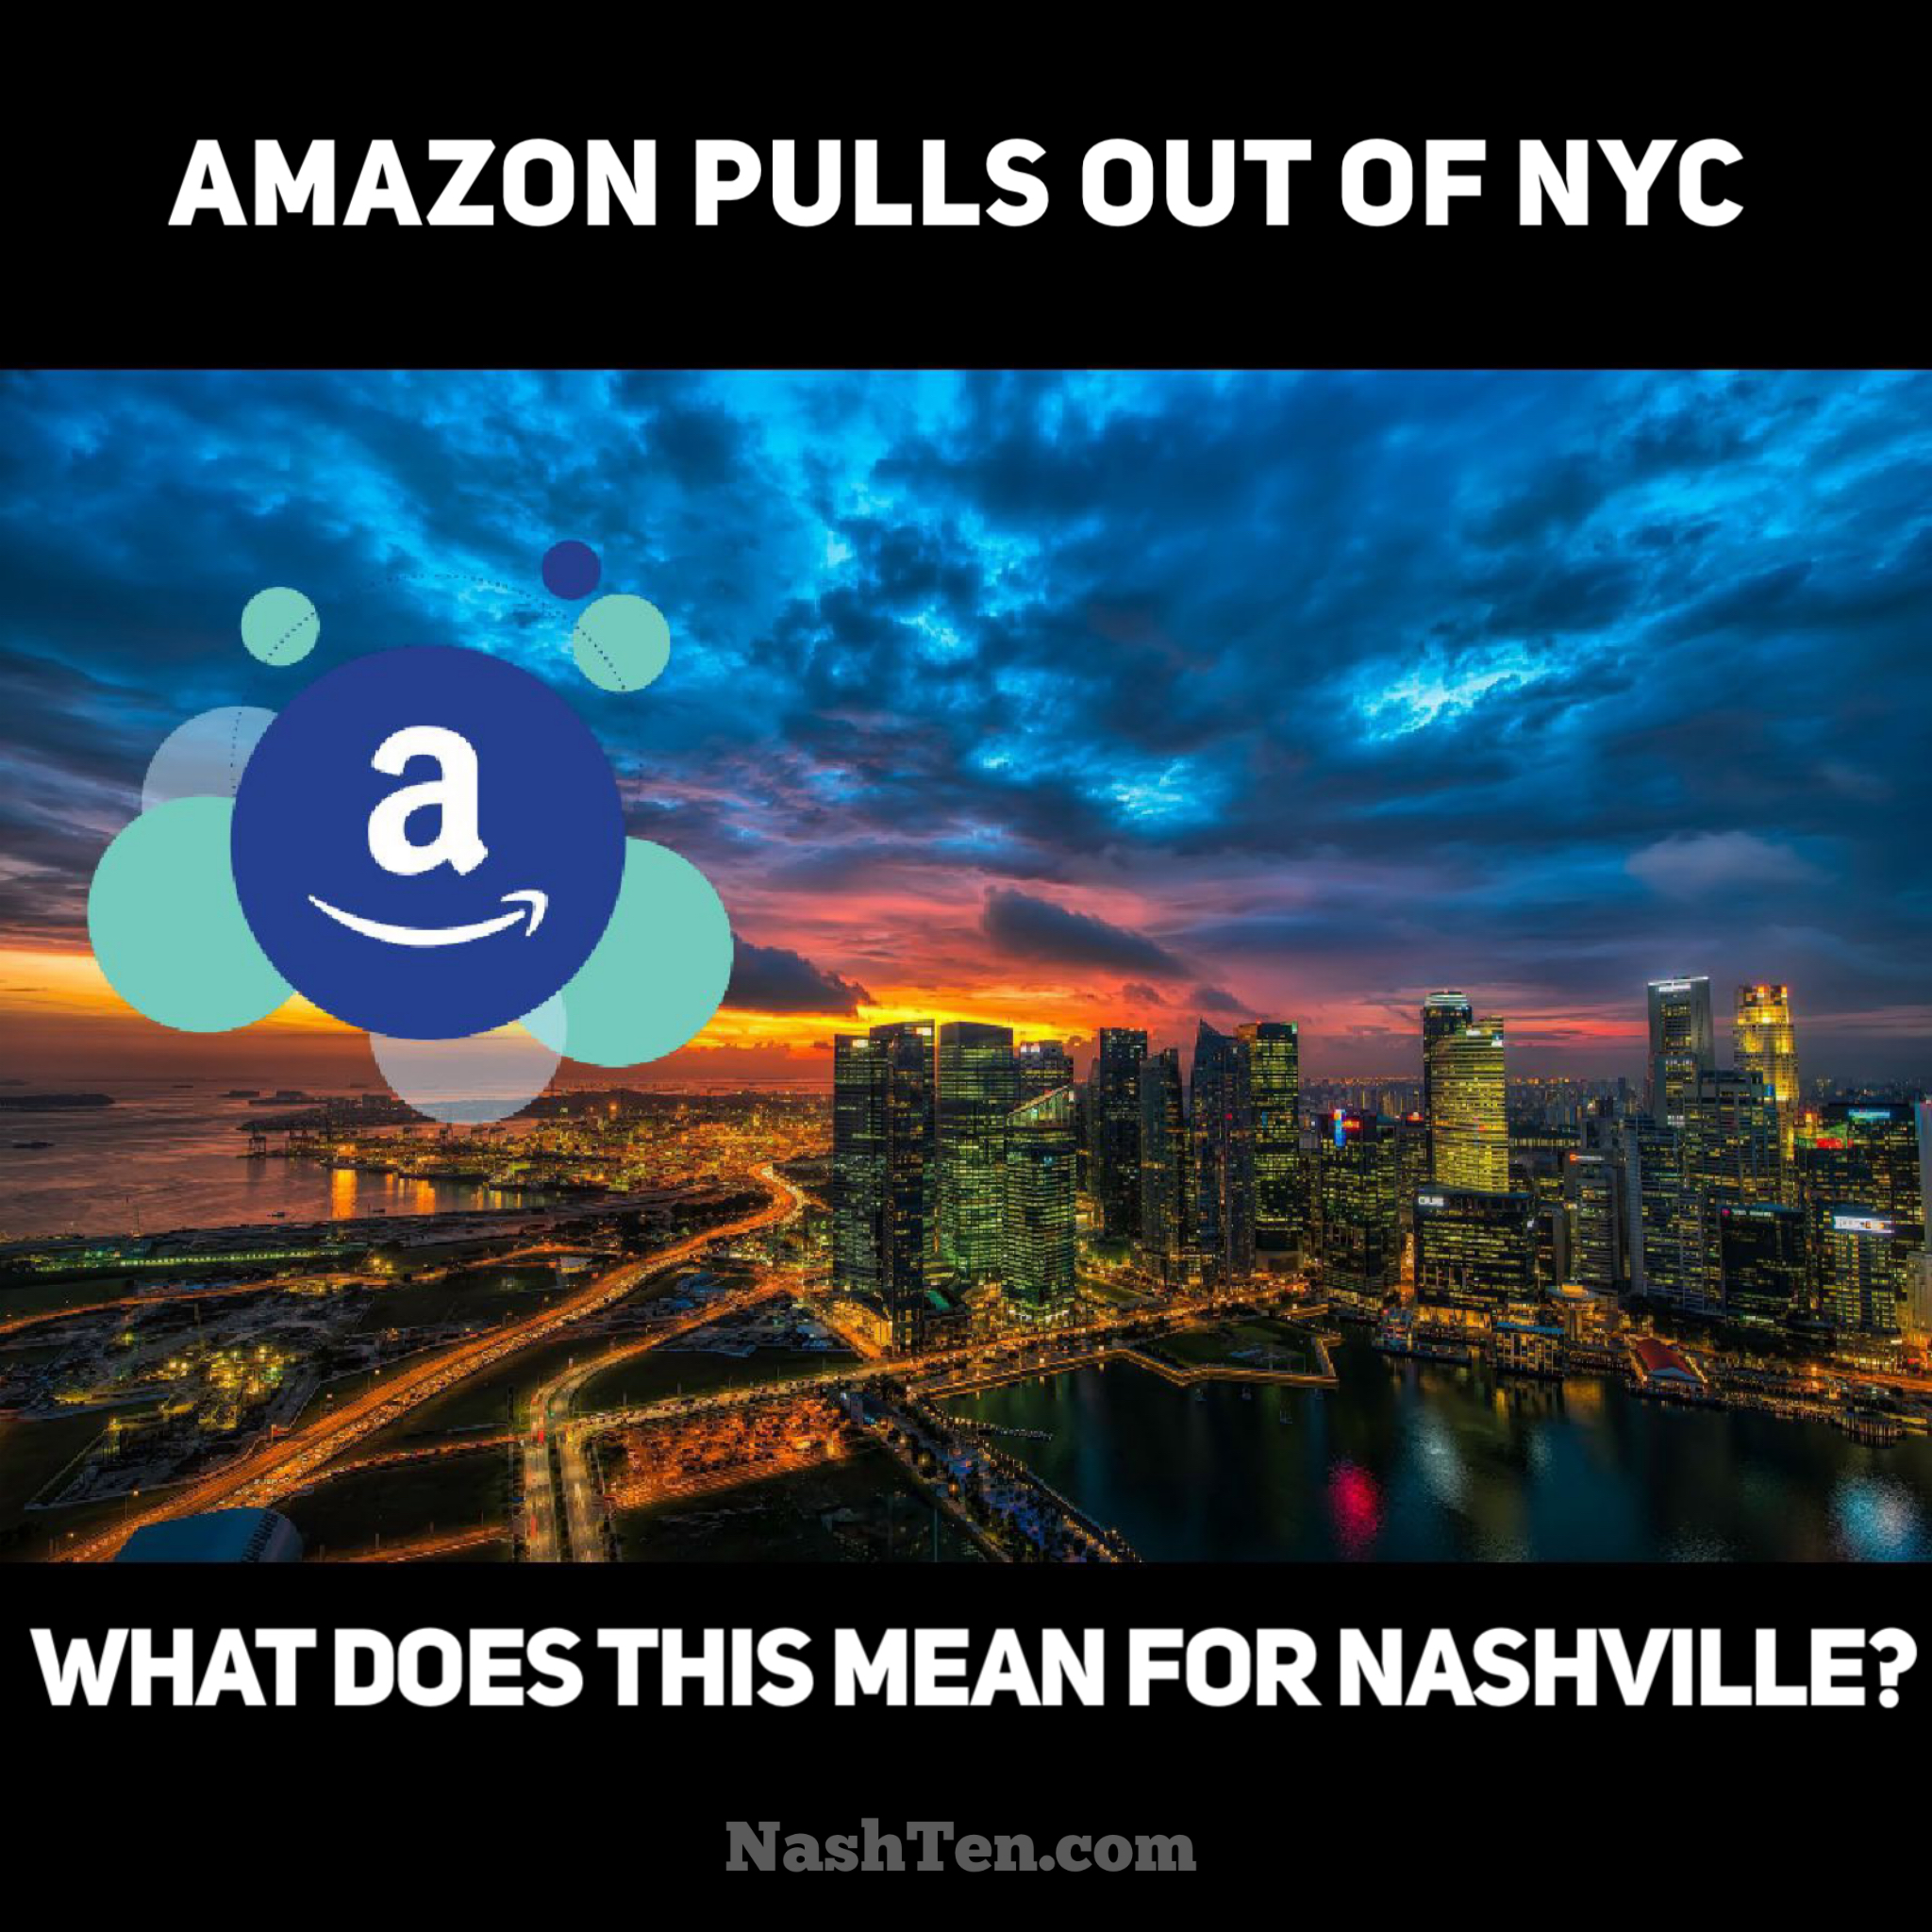 Amazon pulls out of NYC